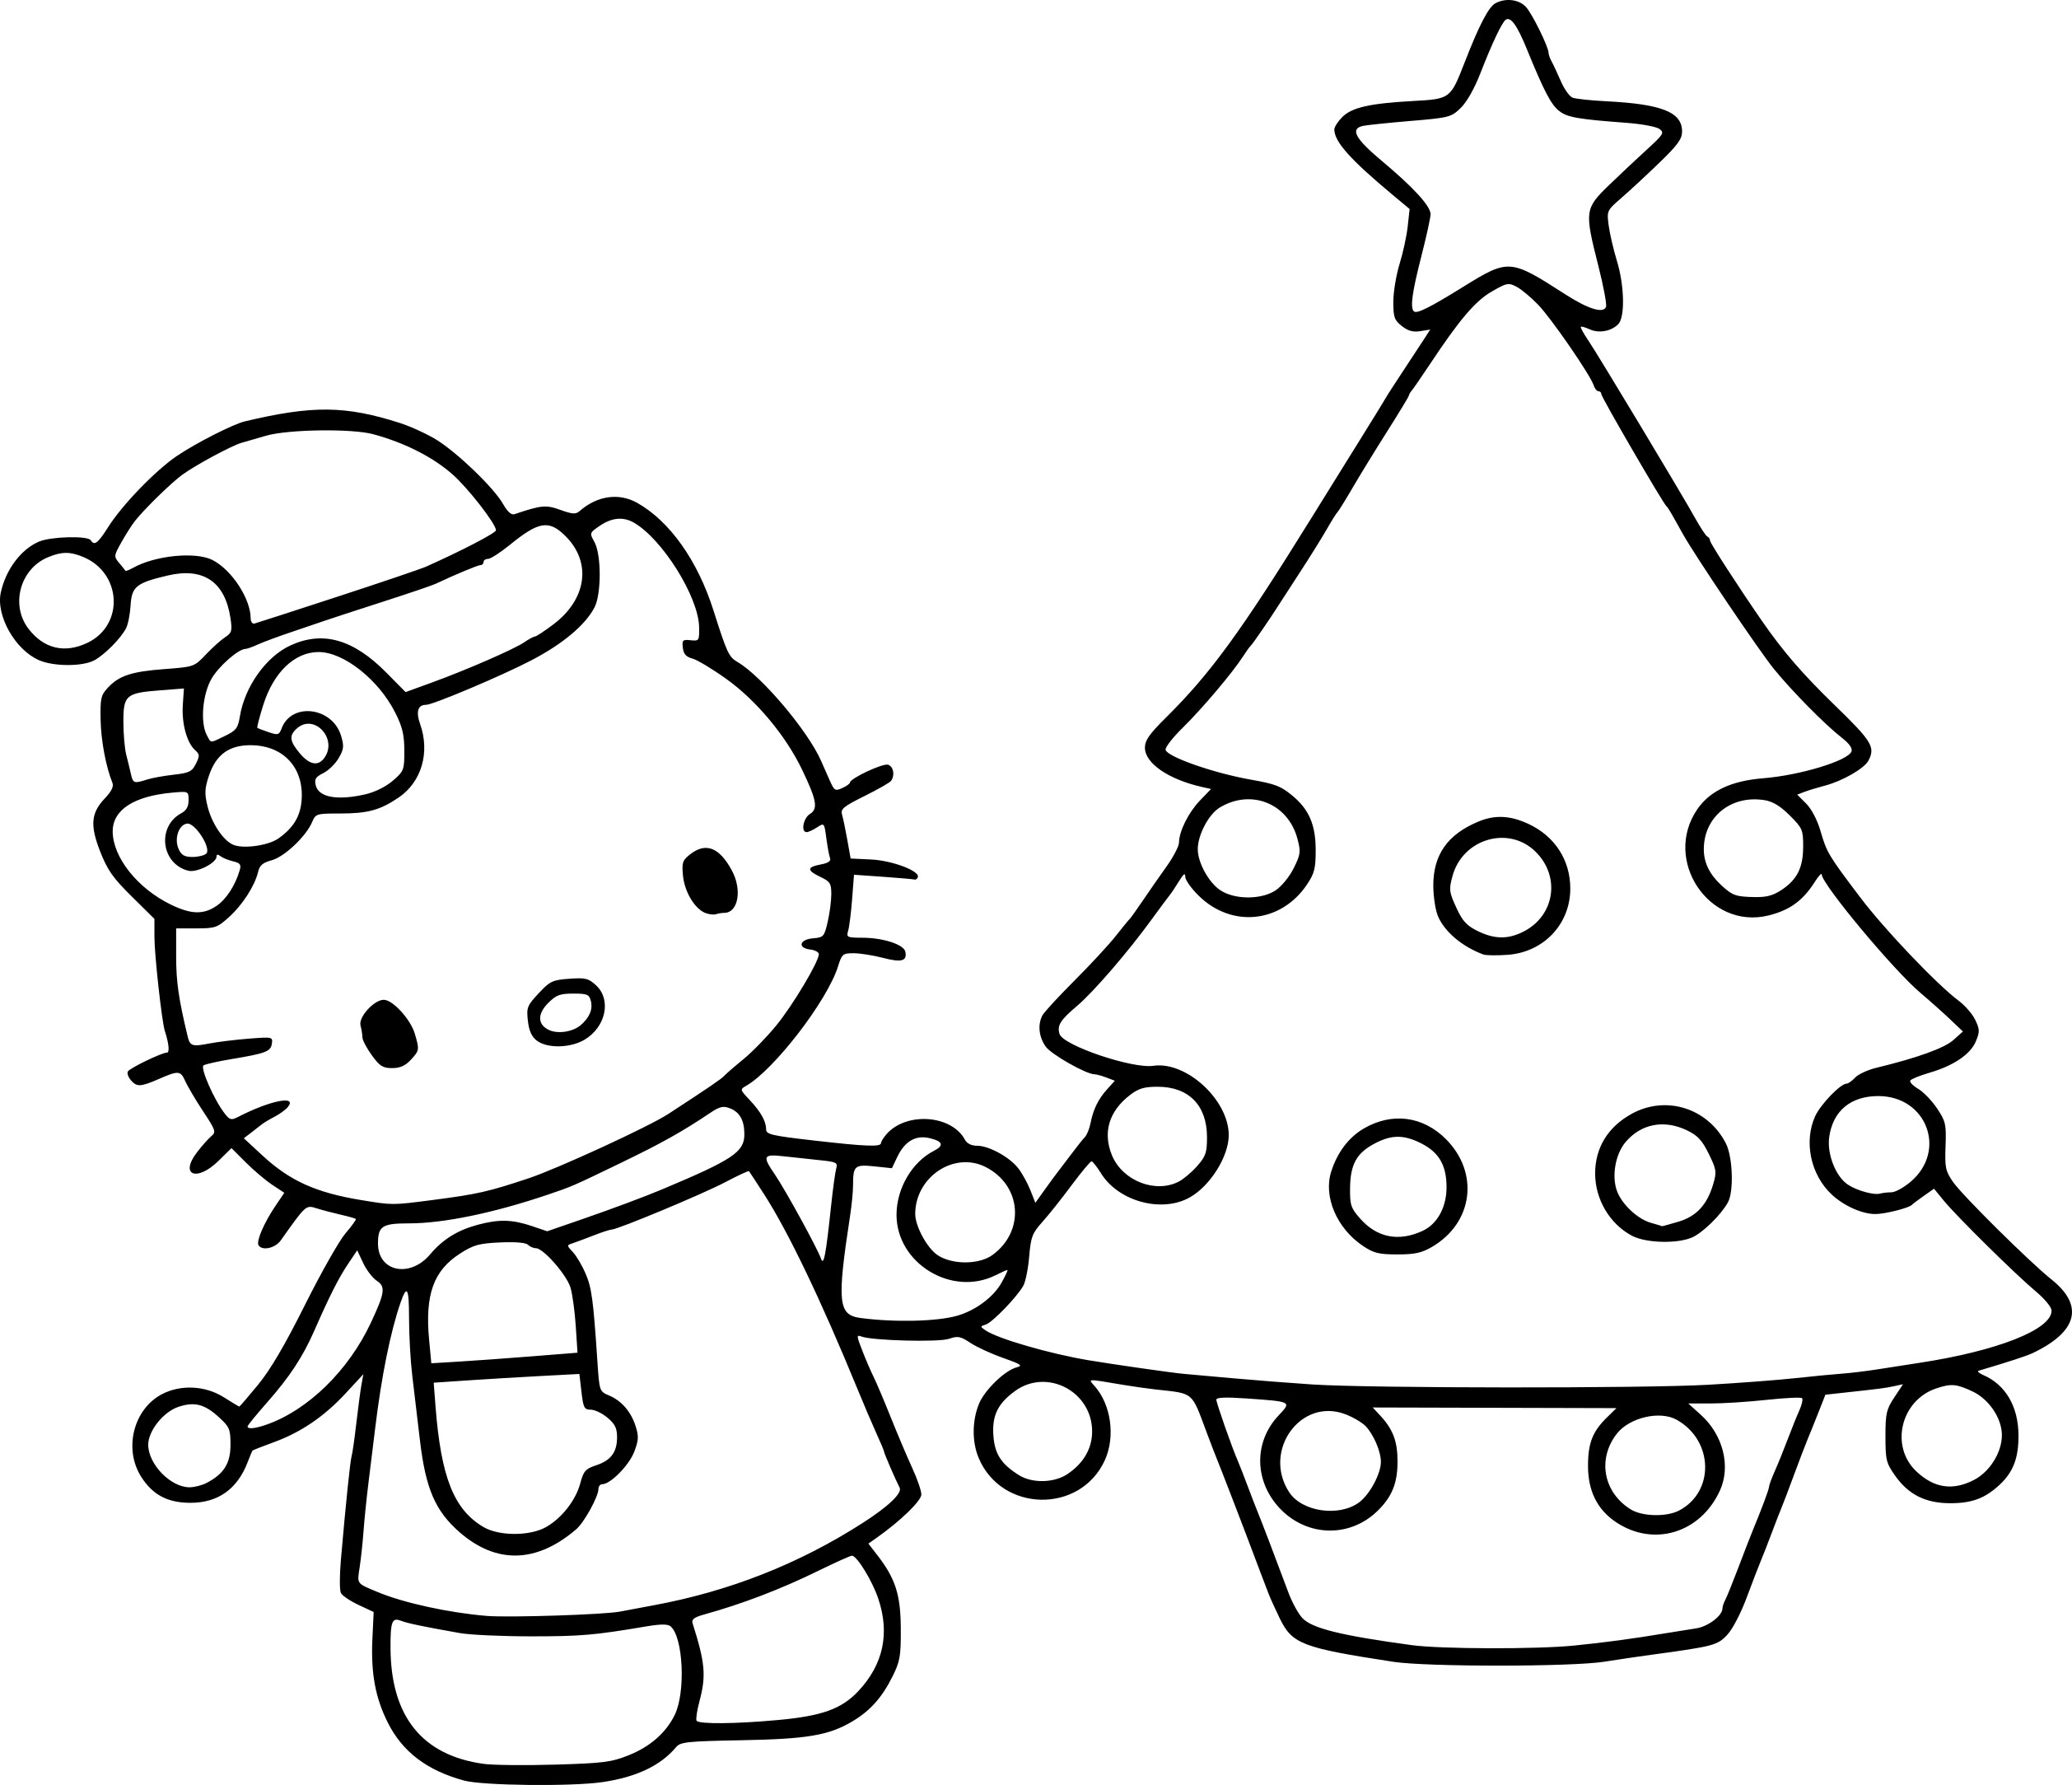 Coloriage Hello Kitty noël à imprimer sur COLORIAGES .info